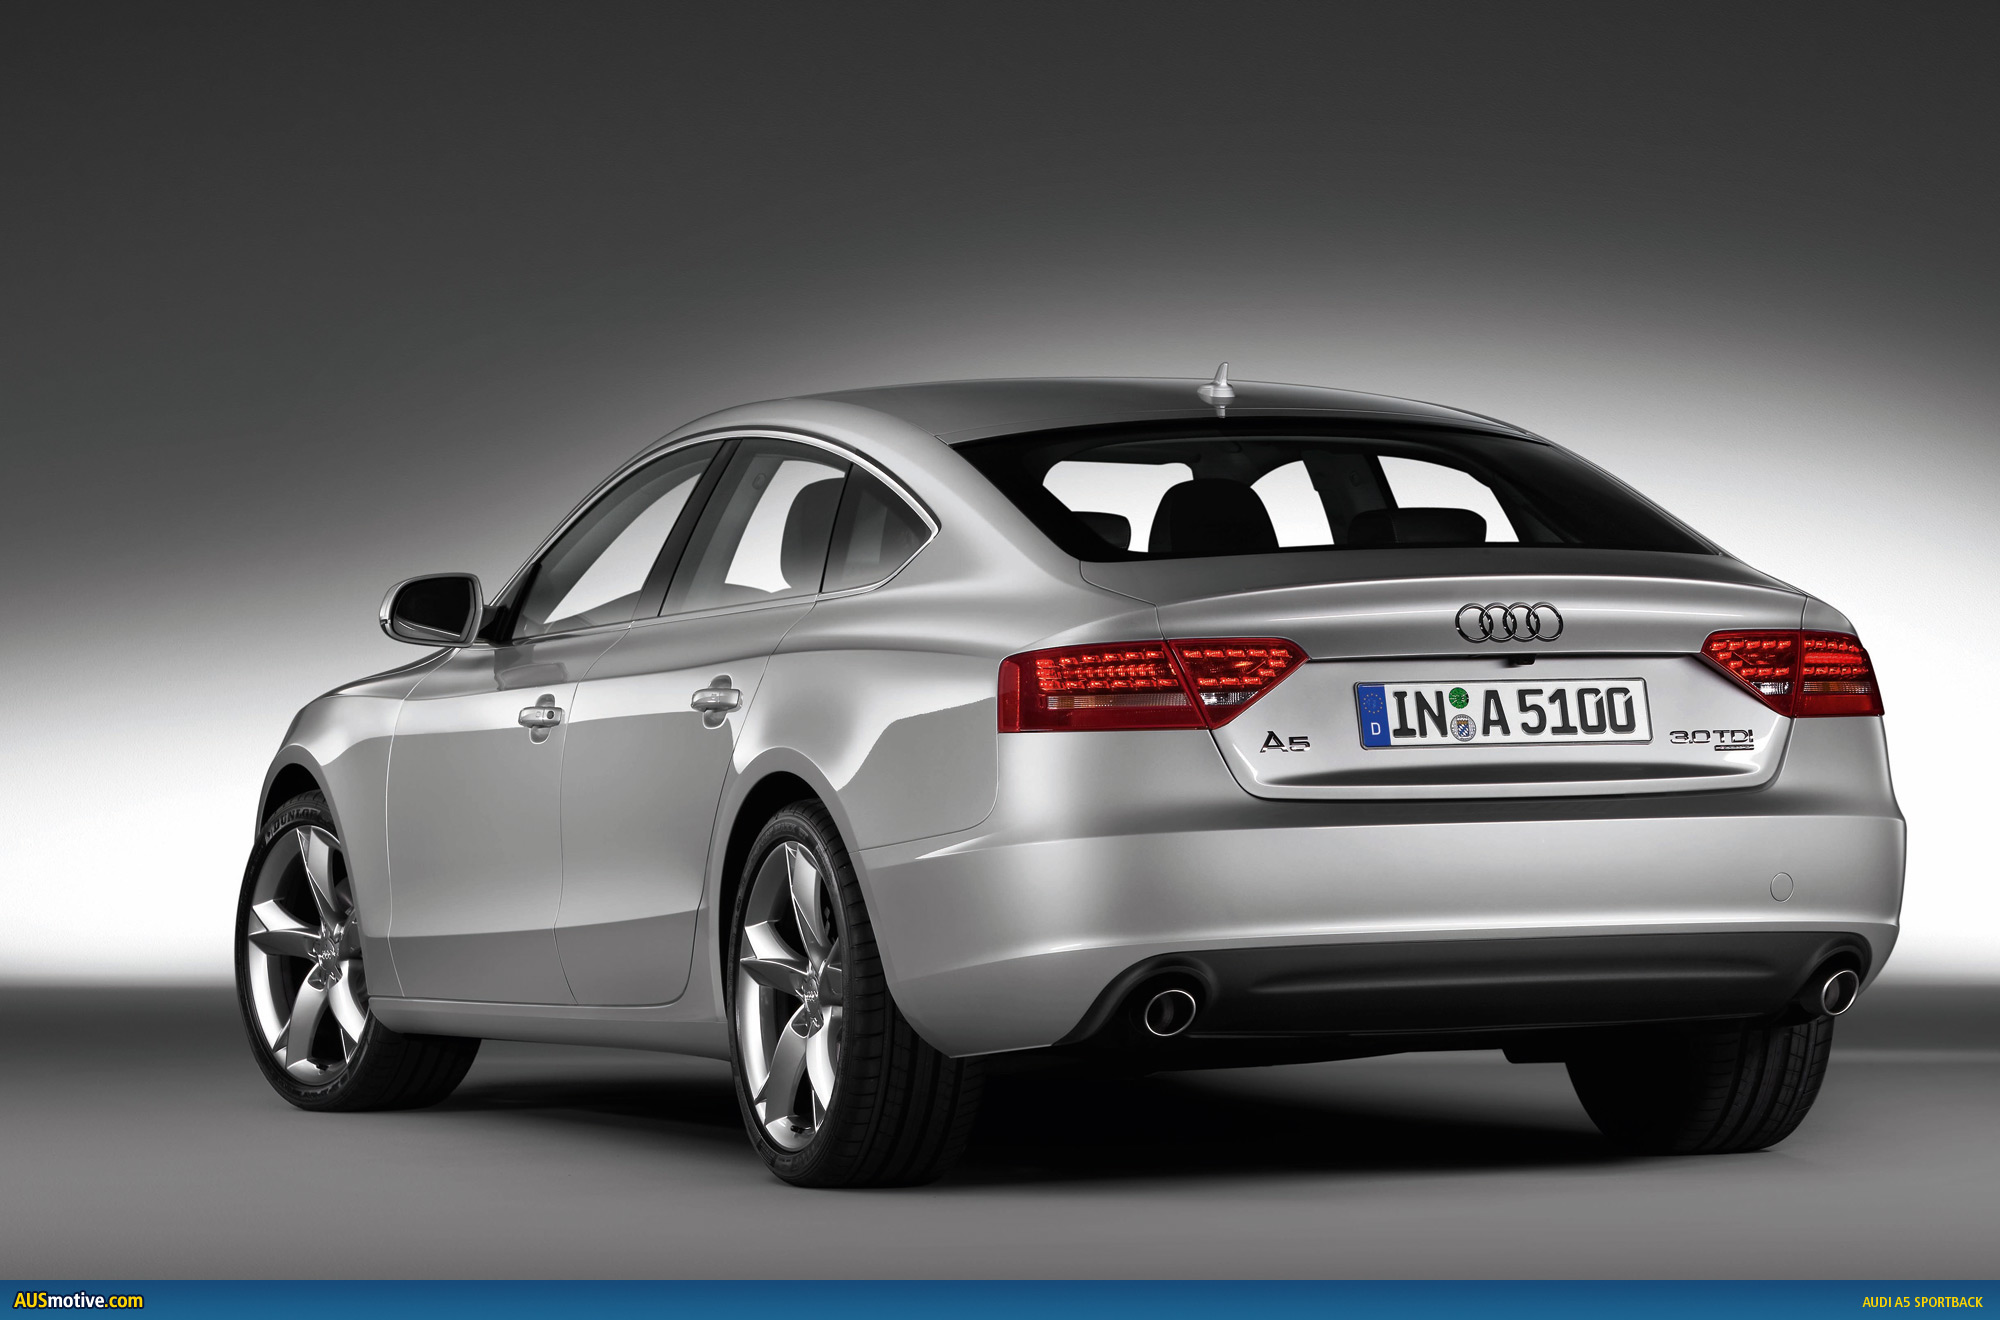 audi unveils a5 sportback due in australia early 2010. Black Bedroom Furniture Sets. Home Design Ideas